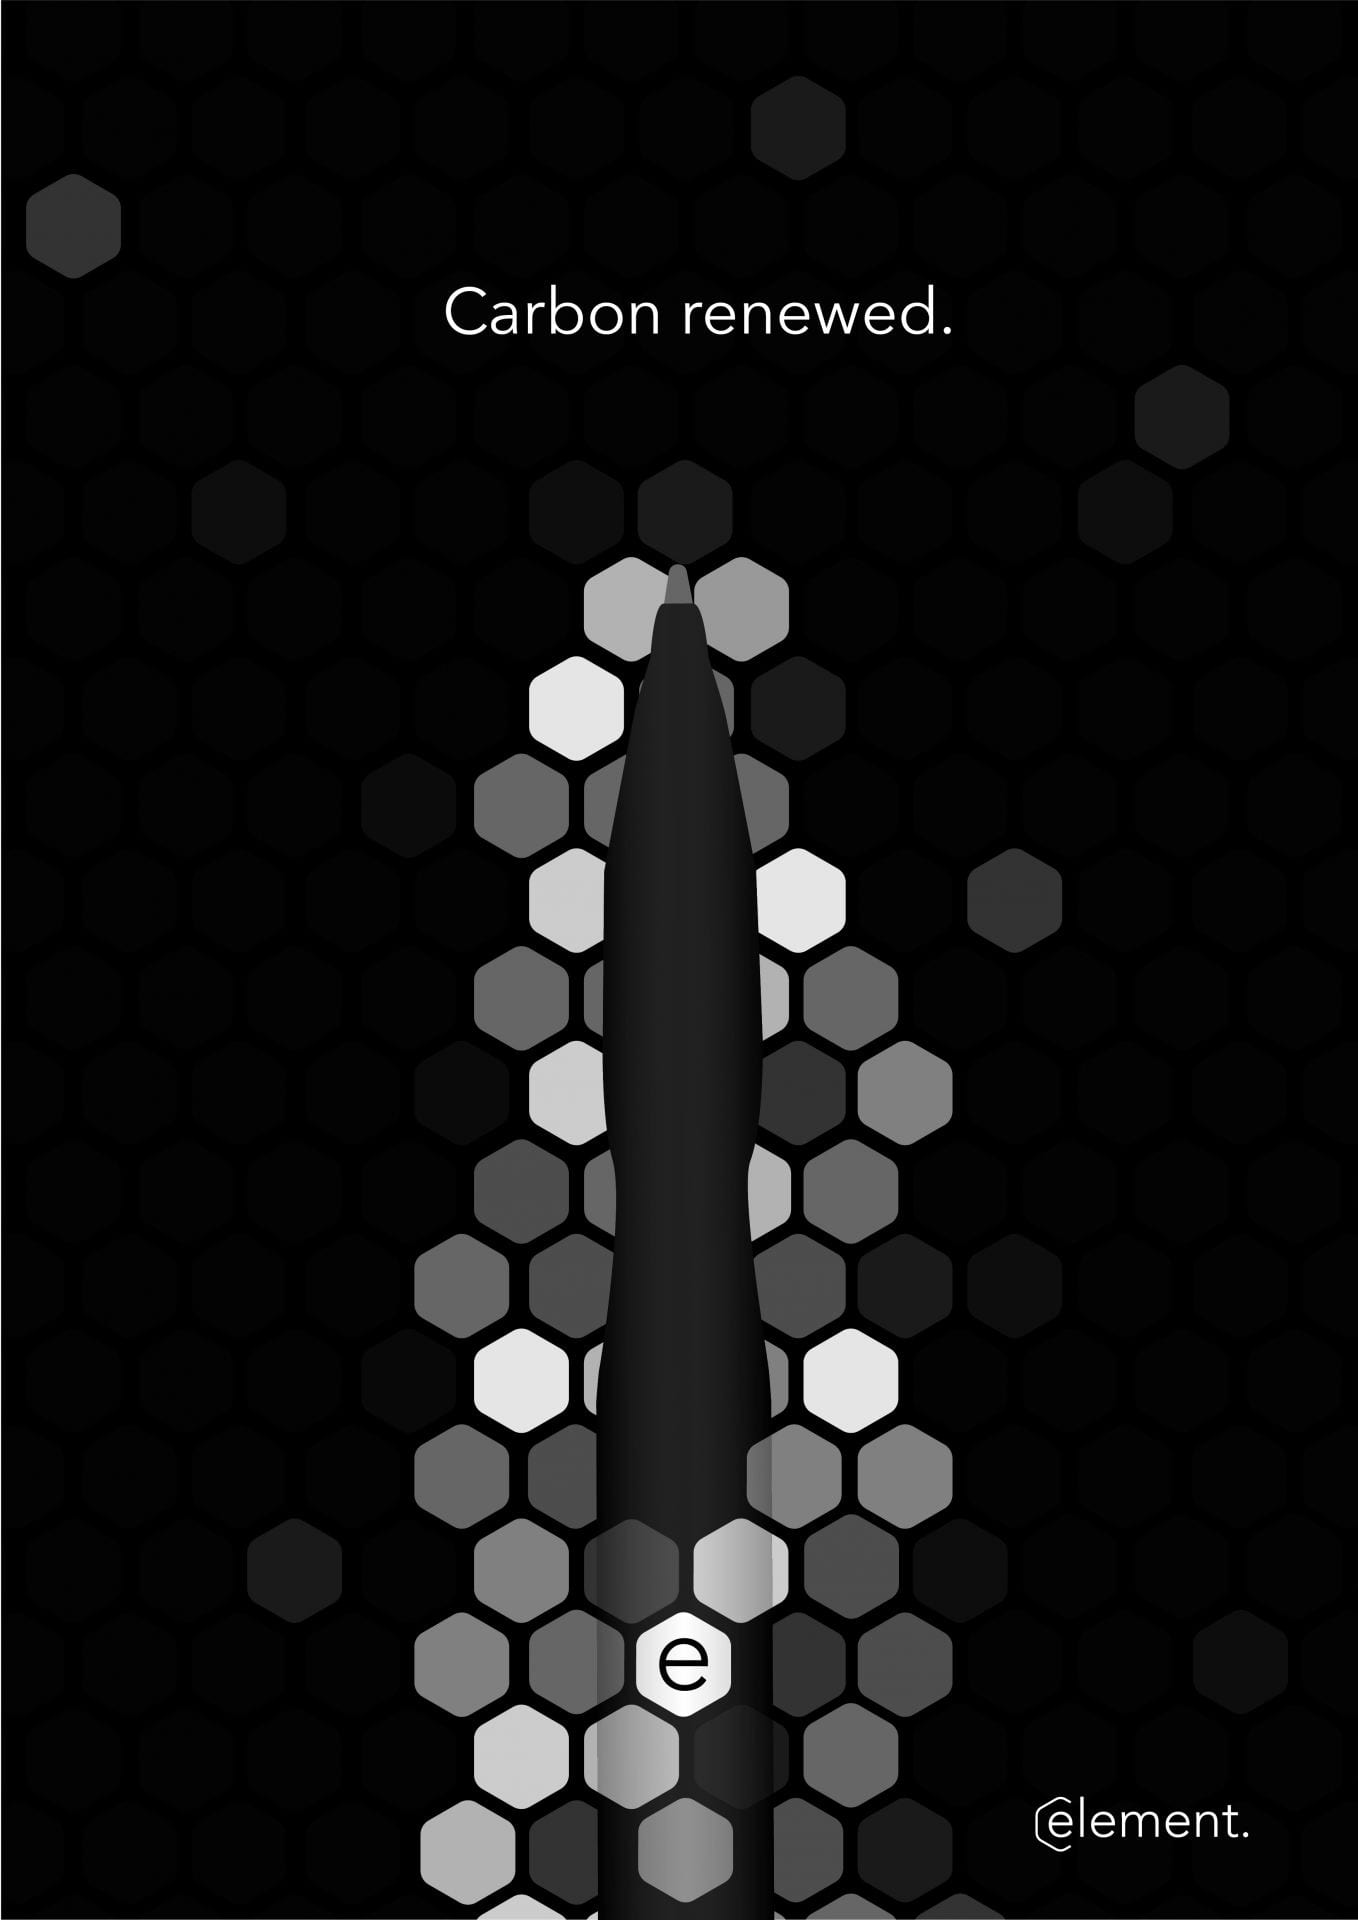 Poster, branding and product design for 'Element'. Sustainable stationery made from captured carbon polymers.